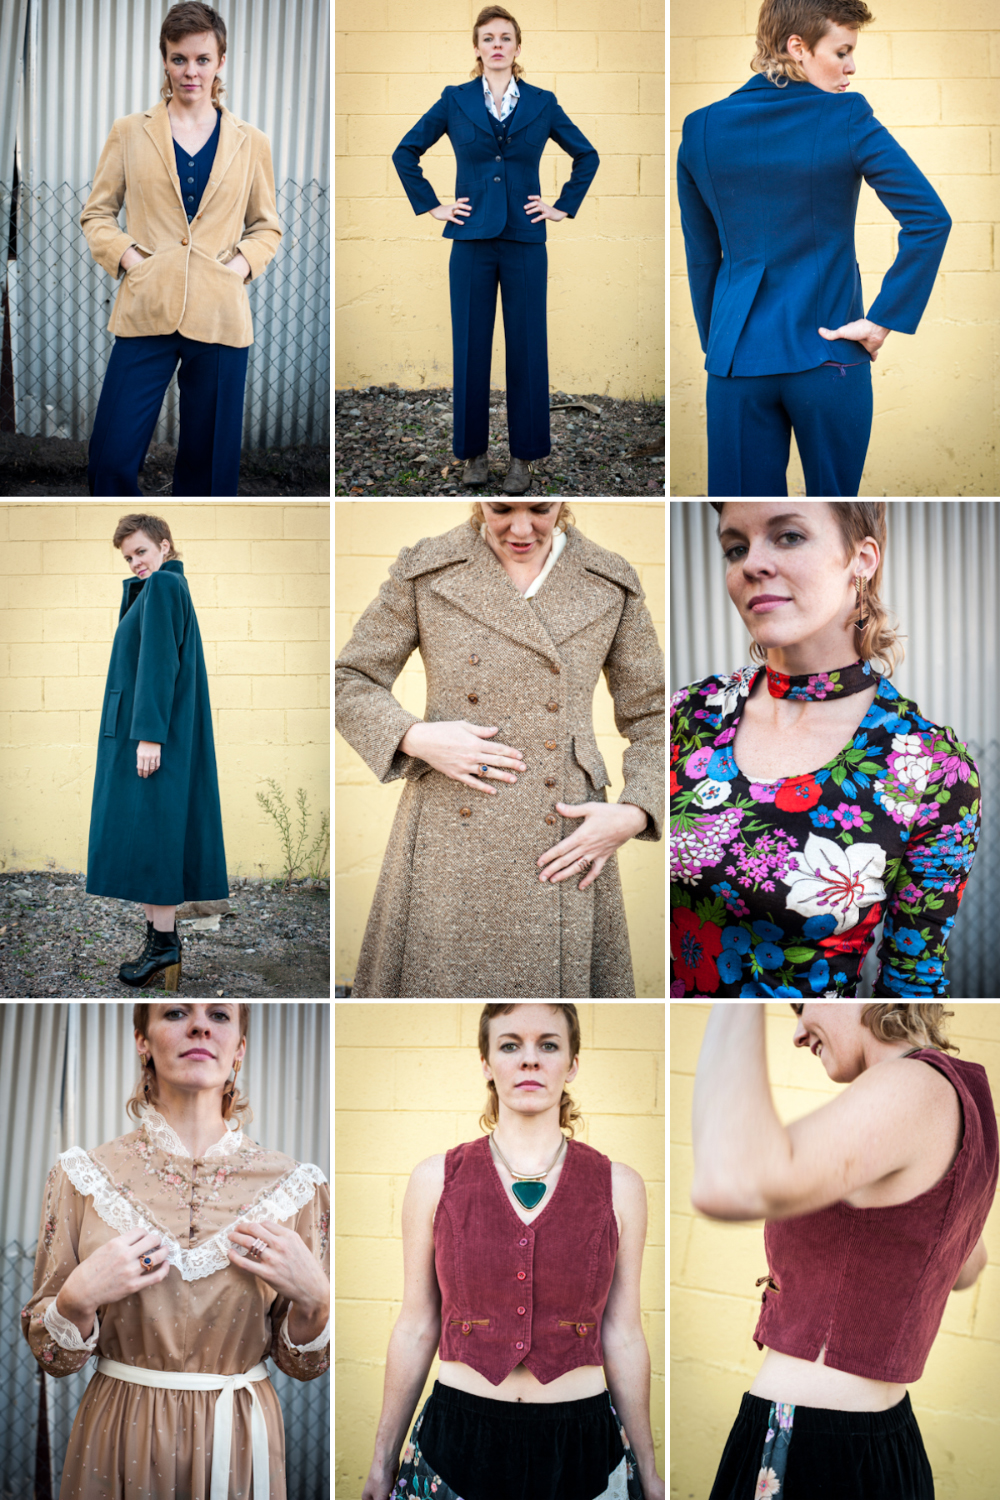 www.stacieannsmith.com #VintageFashion #EtsyShop